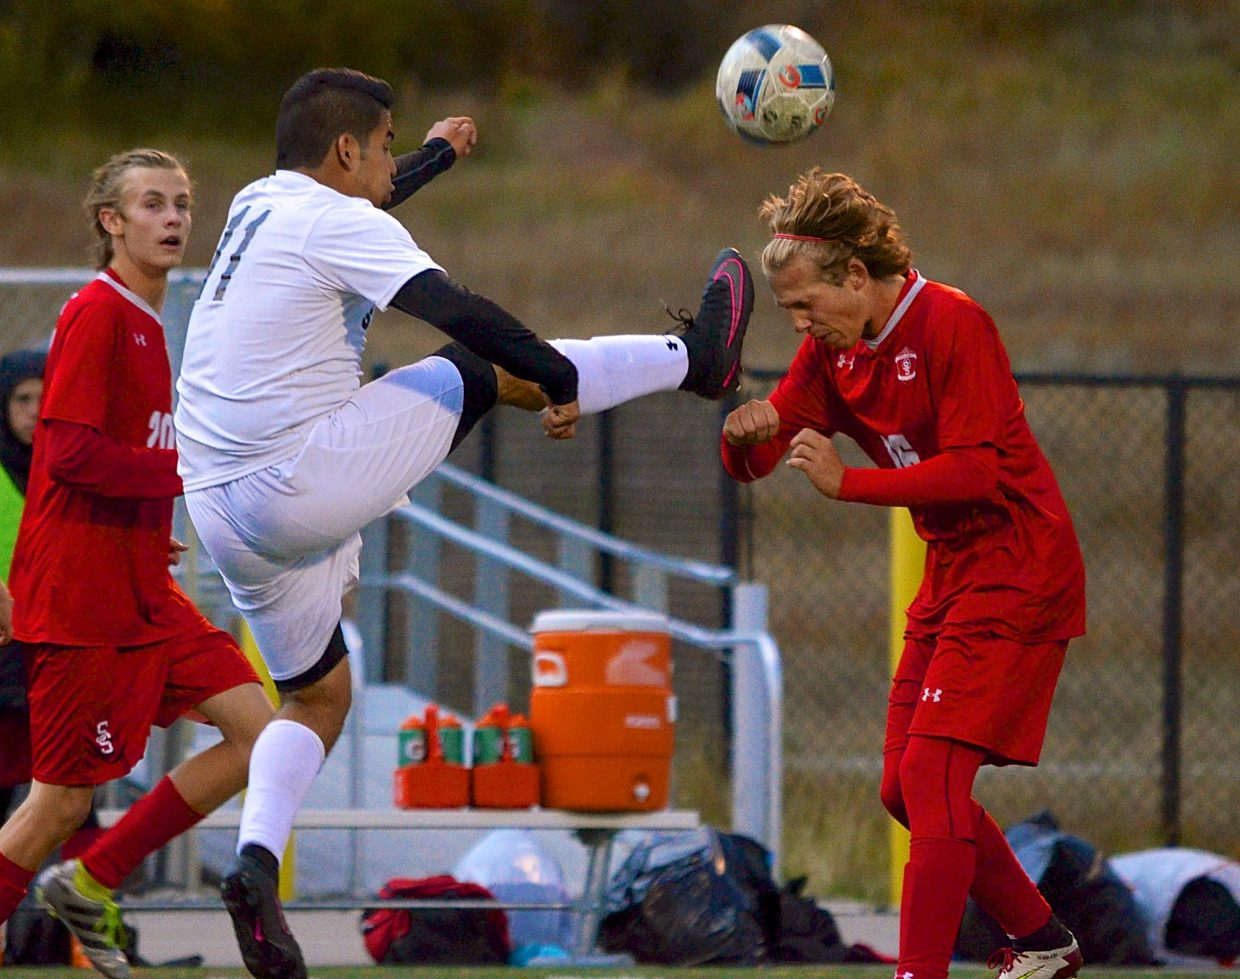 Summit senior forward Salvador Zambrano jumps for the ball as a Steamboat Springs defender moves in for a header during a home varsity soccer game on Sept. 22. The Tigers won, 4-2.